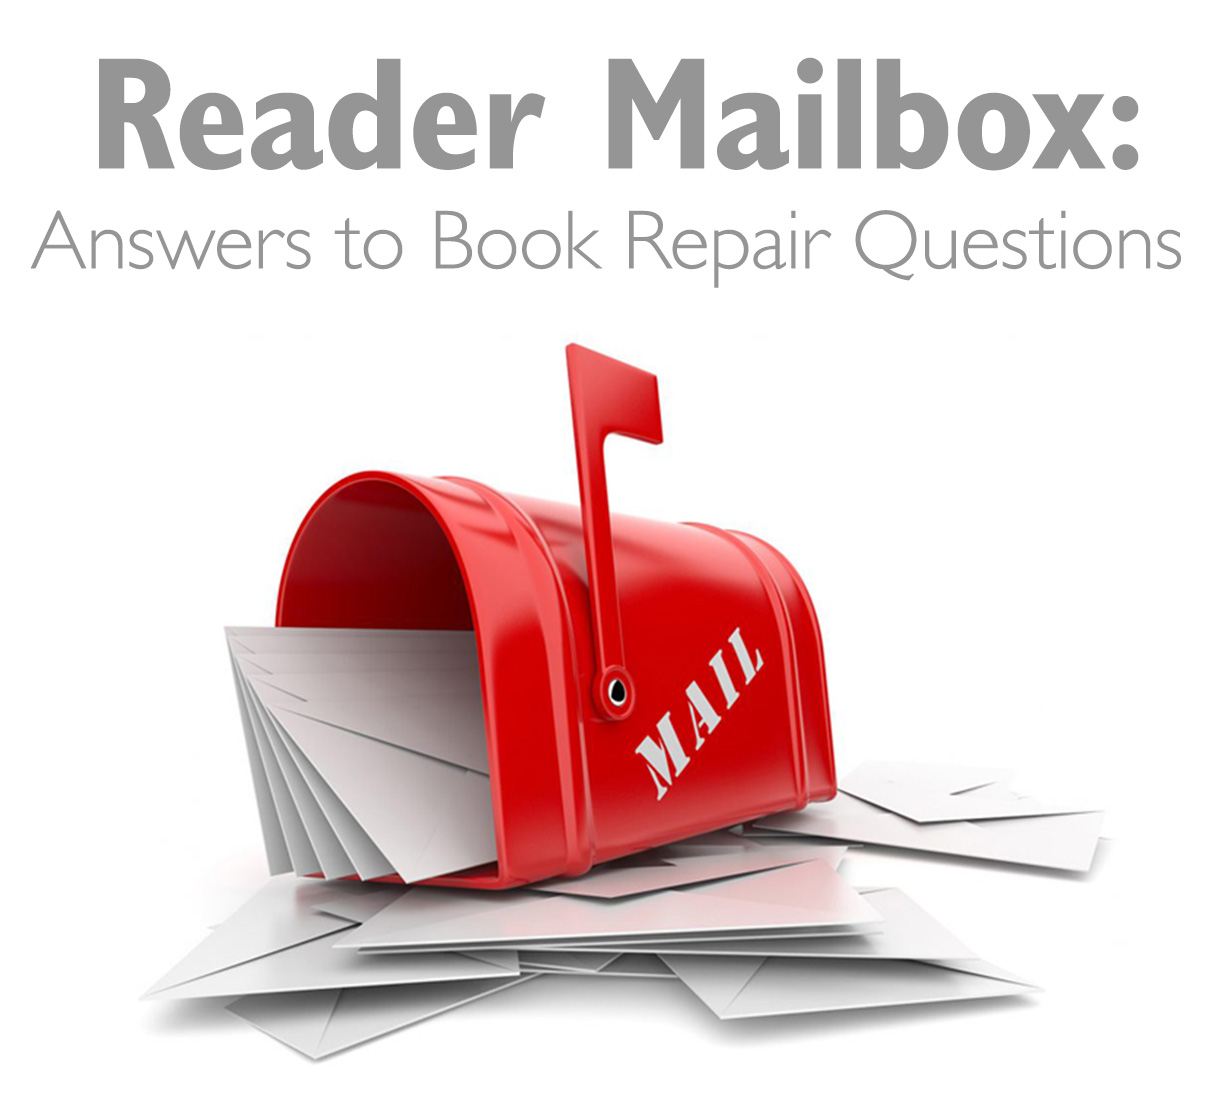 Answers to 9 Common Book Repair Questions